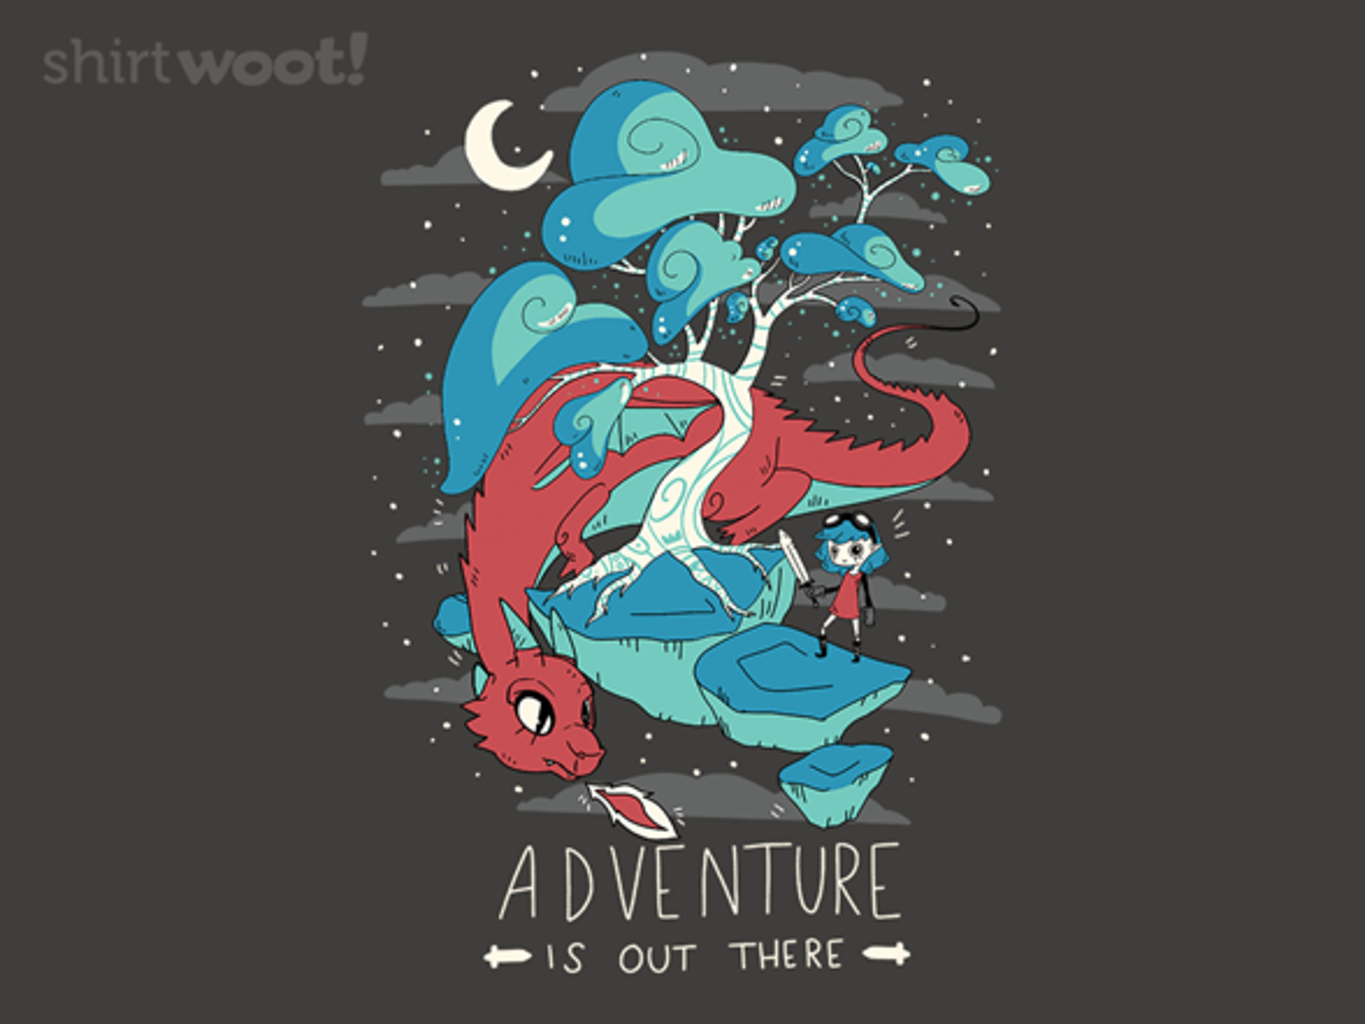 Woot!: Out for Adventure - $15.00 + Free shipping